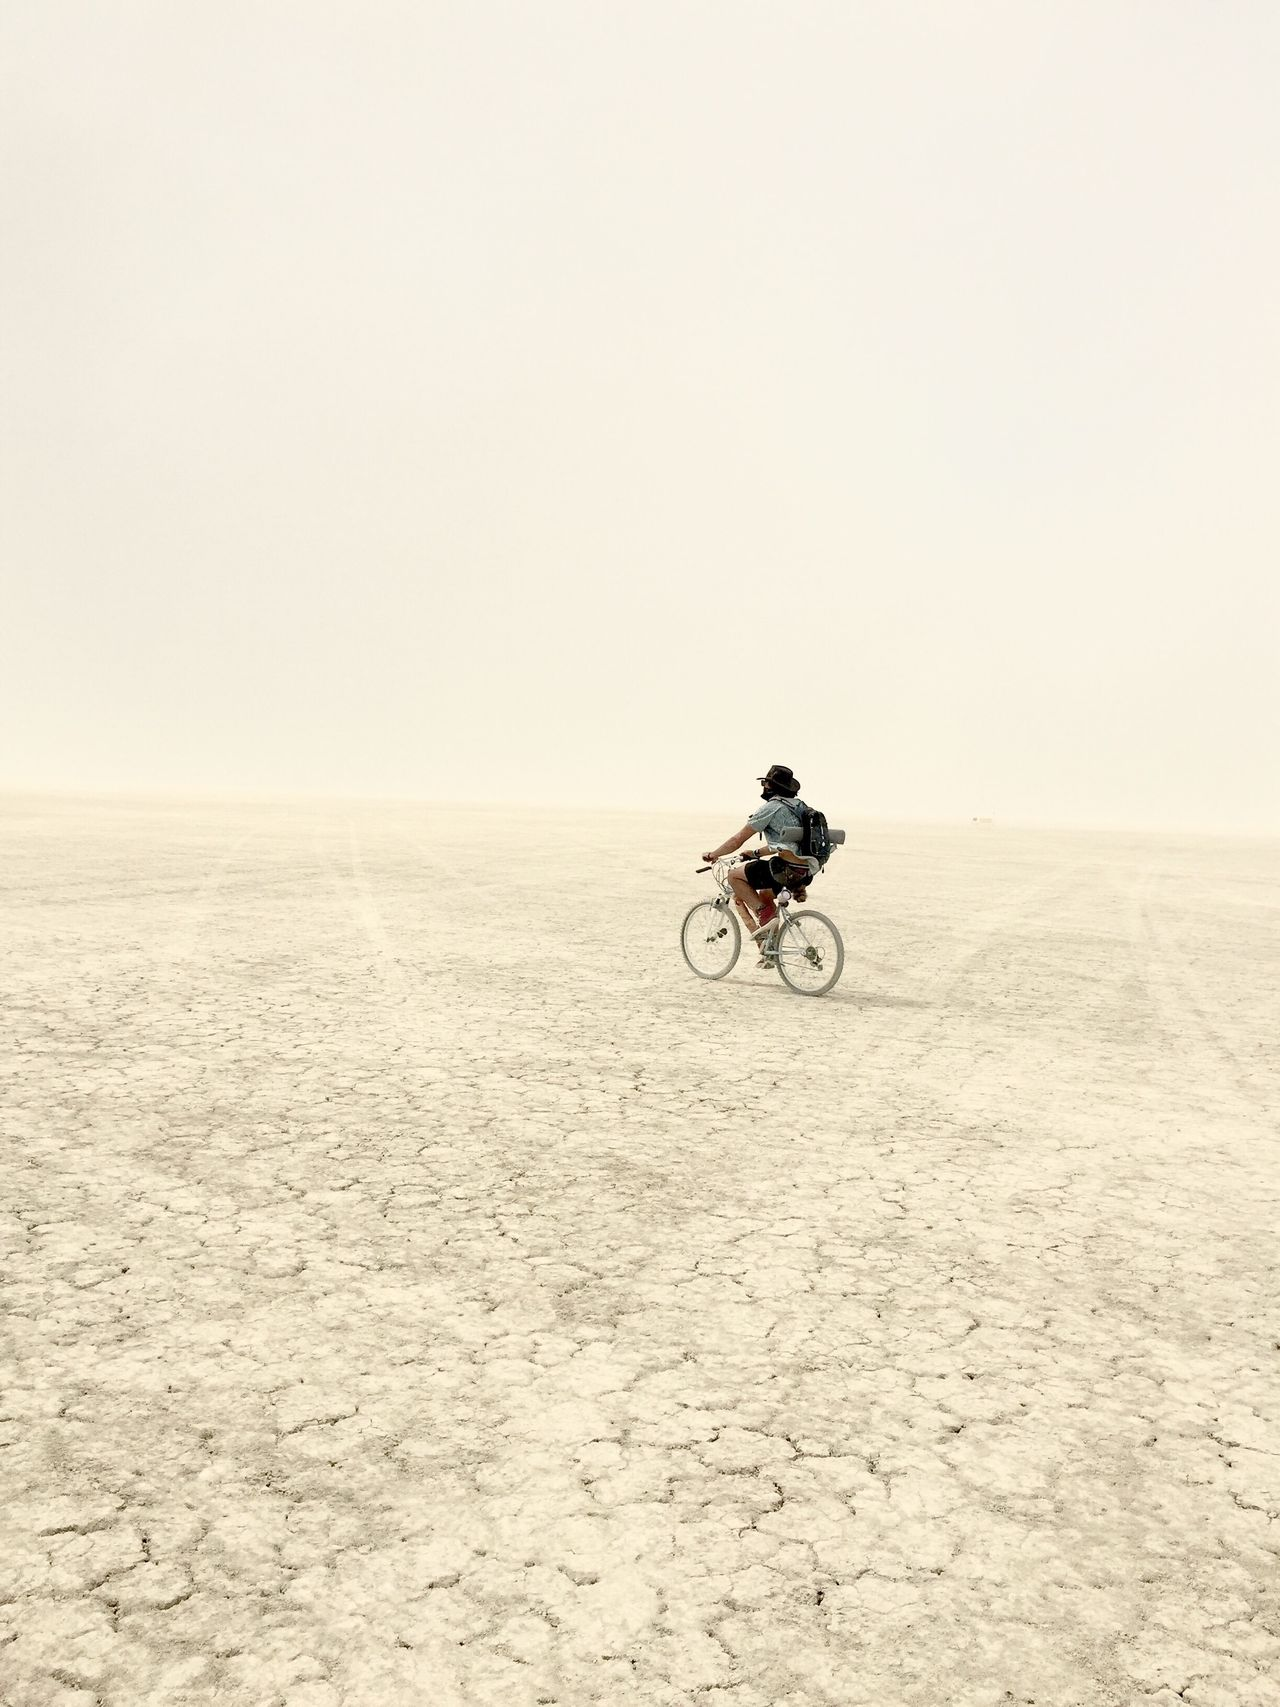 Riding solo, where I'll go only I will know One Person Clear Sky Outdoors Bicycle Full Length Riding Motorcycle Men One Man Only Day Nature Only Men People (null)Burningman Desert Hot America California Adventure Explore Fresh On Market 2016